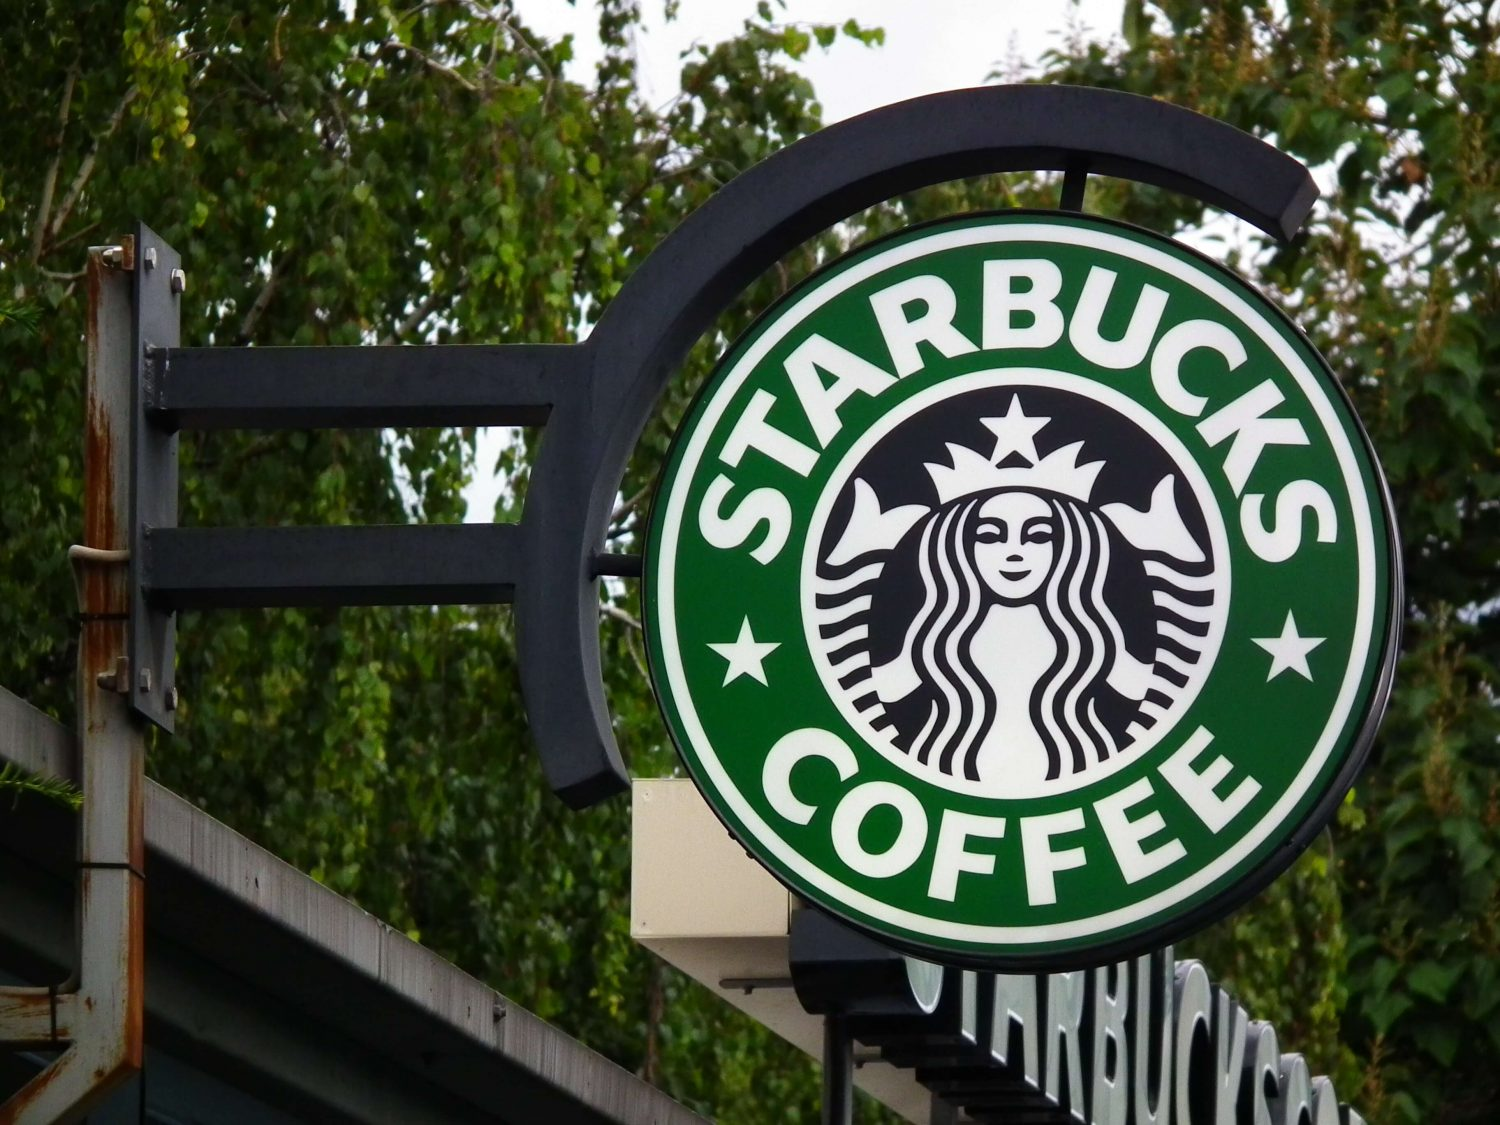 Starbucks Confirms More Vegan Food Options Are Coming Due to High Demand